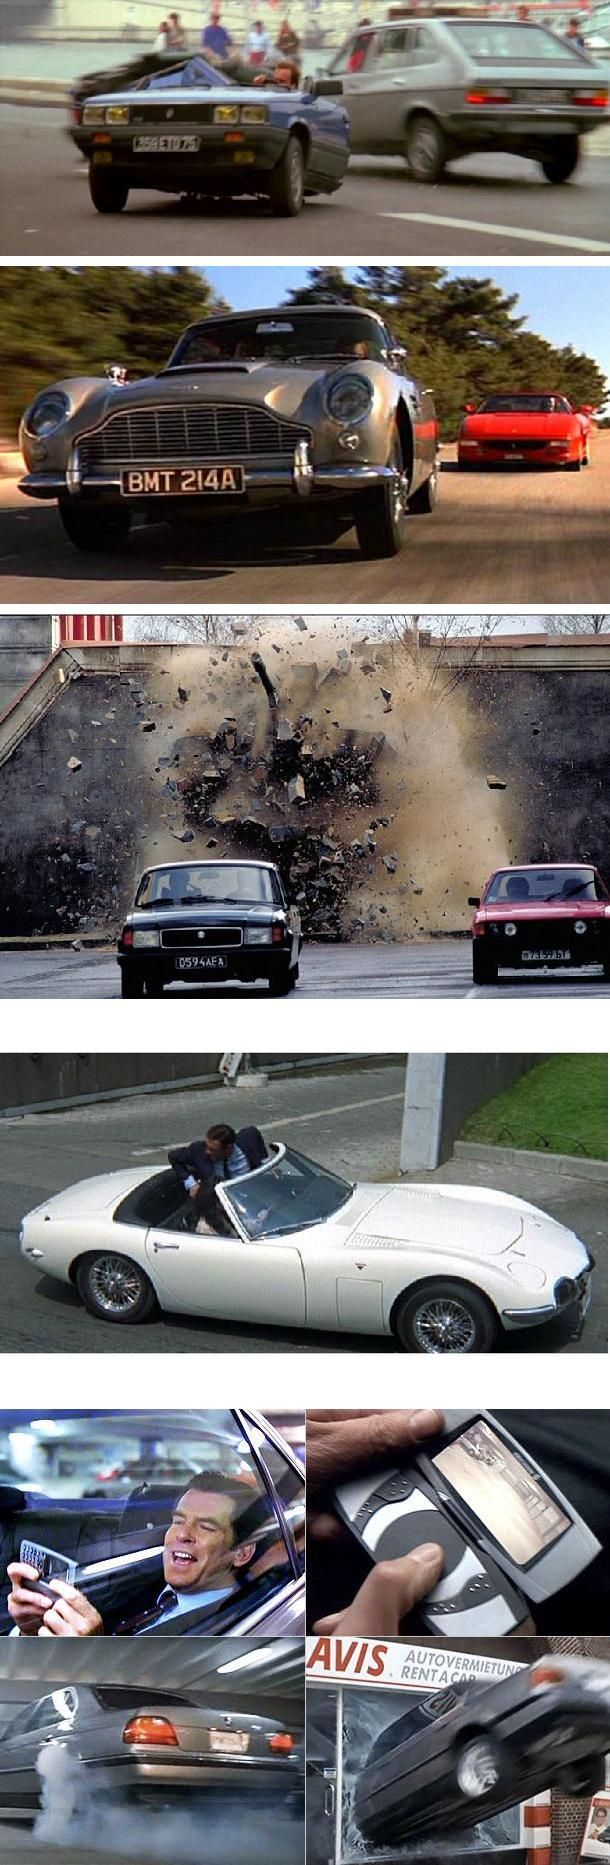 10 of the best james bond car chases of all time